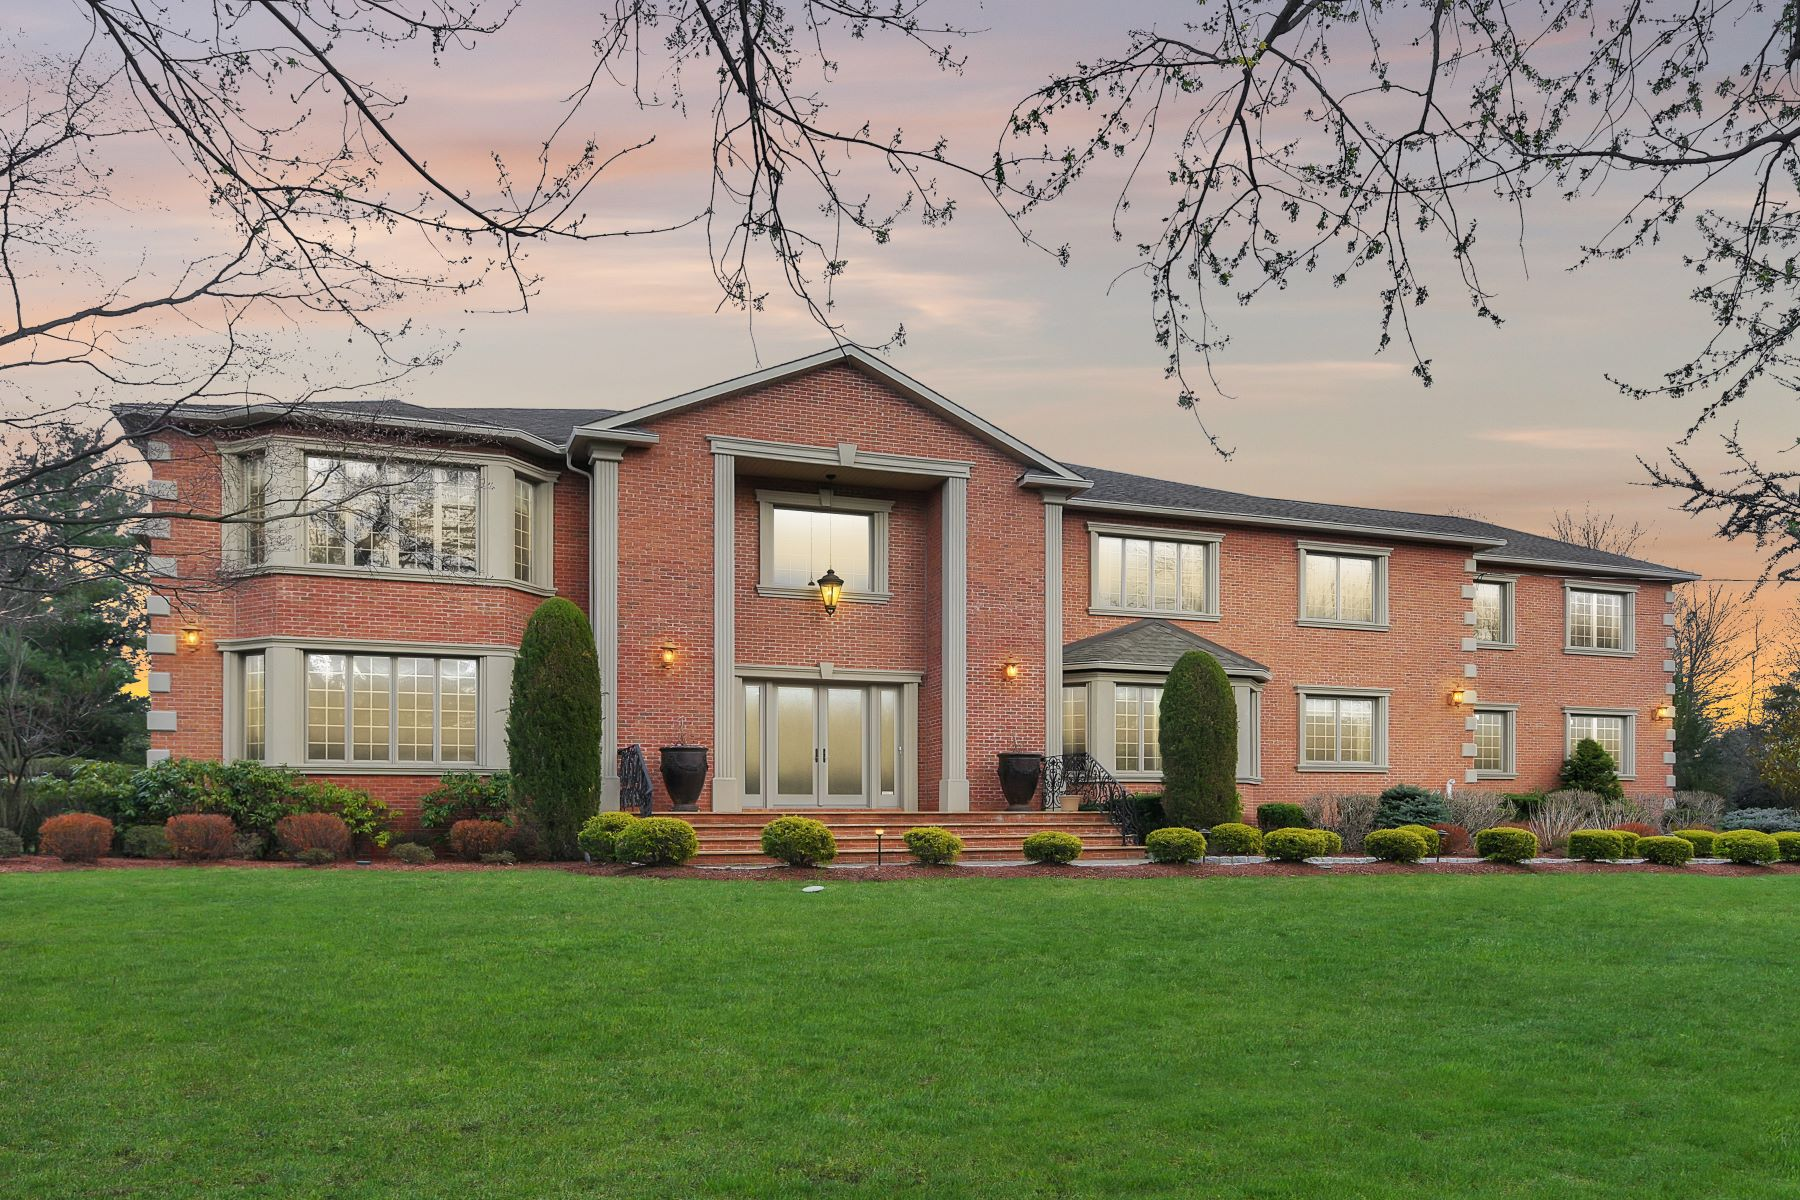 Single Family Homes for Sale at 916 Maria Court Redefines Magnificence 916 Marie Court Franklin Lakes, New Jersey 07417 United States